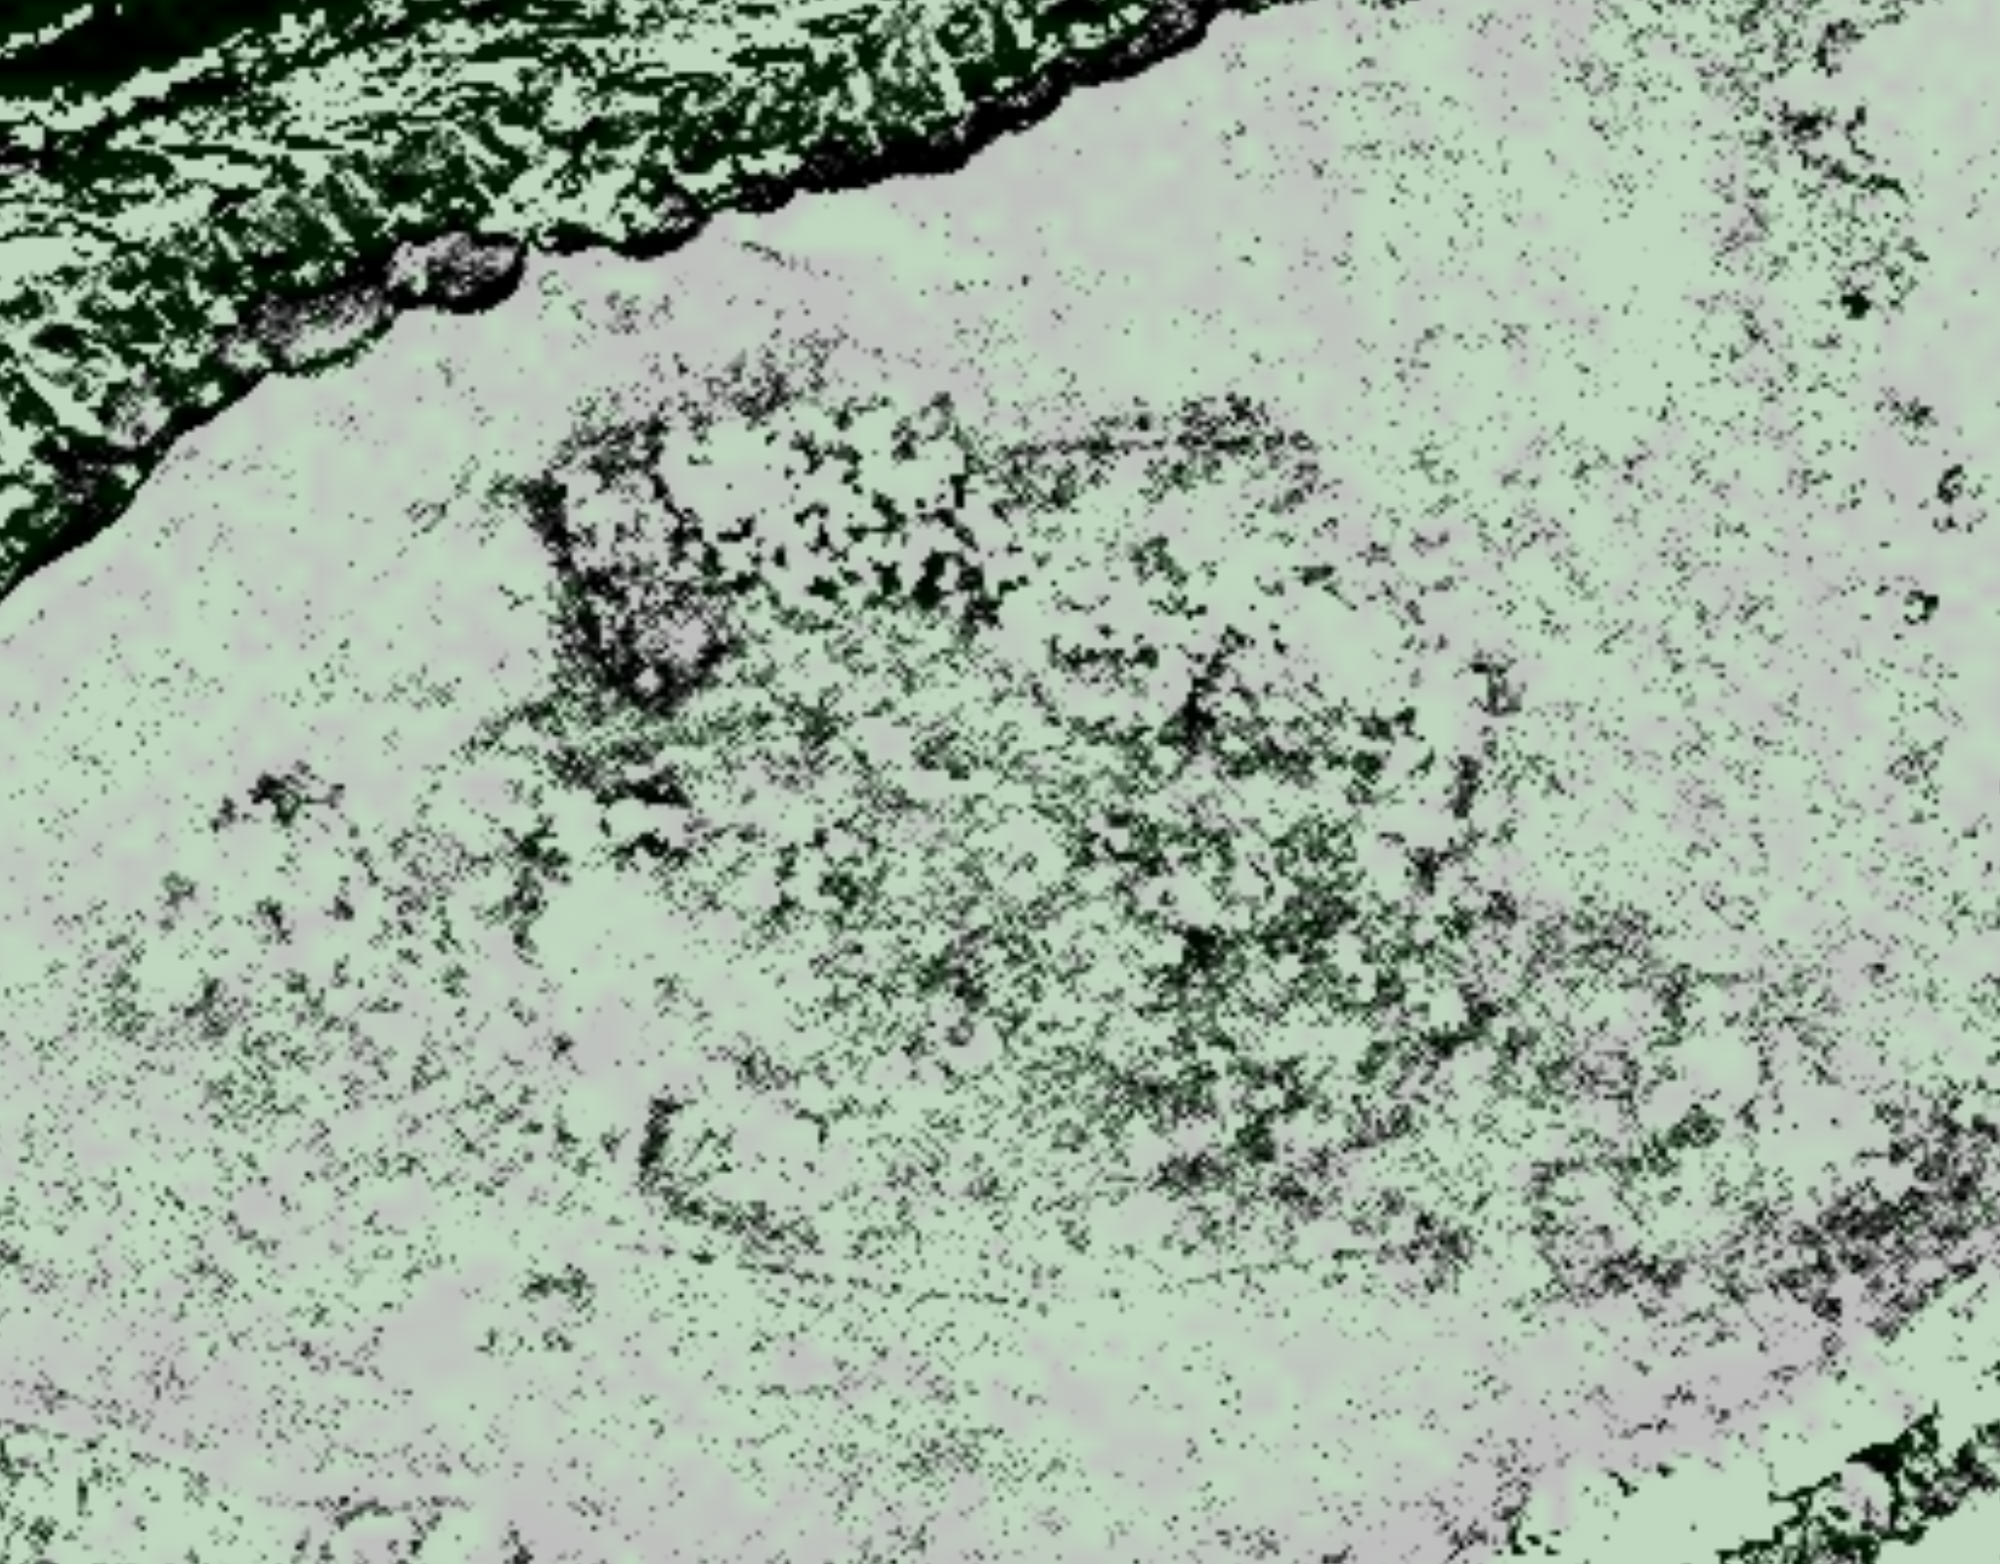 Satellite imagery with .5m resolution showing the anomalies spotted from the imagery analysis. The darker areas indicate potential turf structures, indicated by vegetation health differences. Image courtesy DigitalGlobe